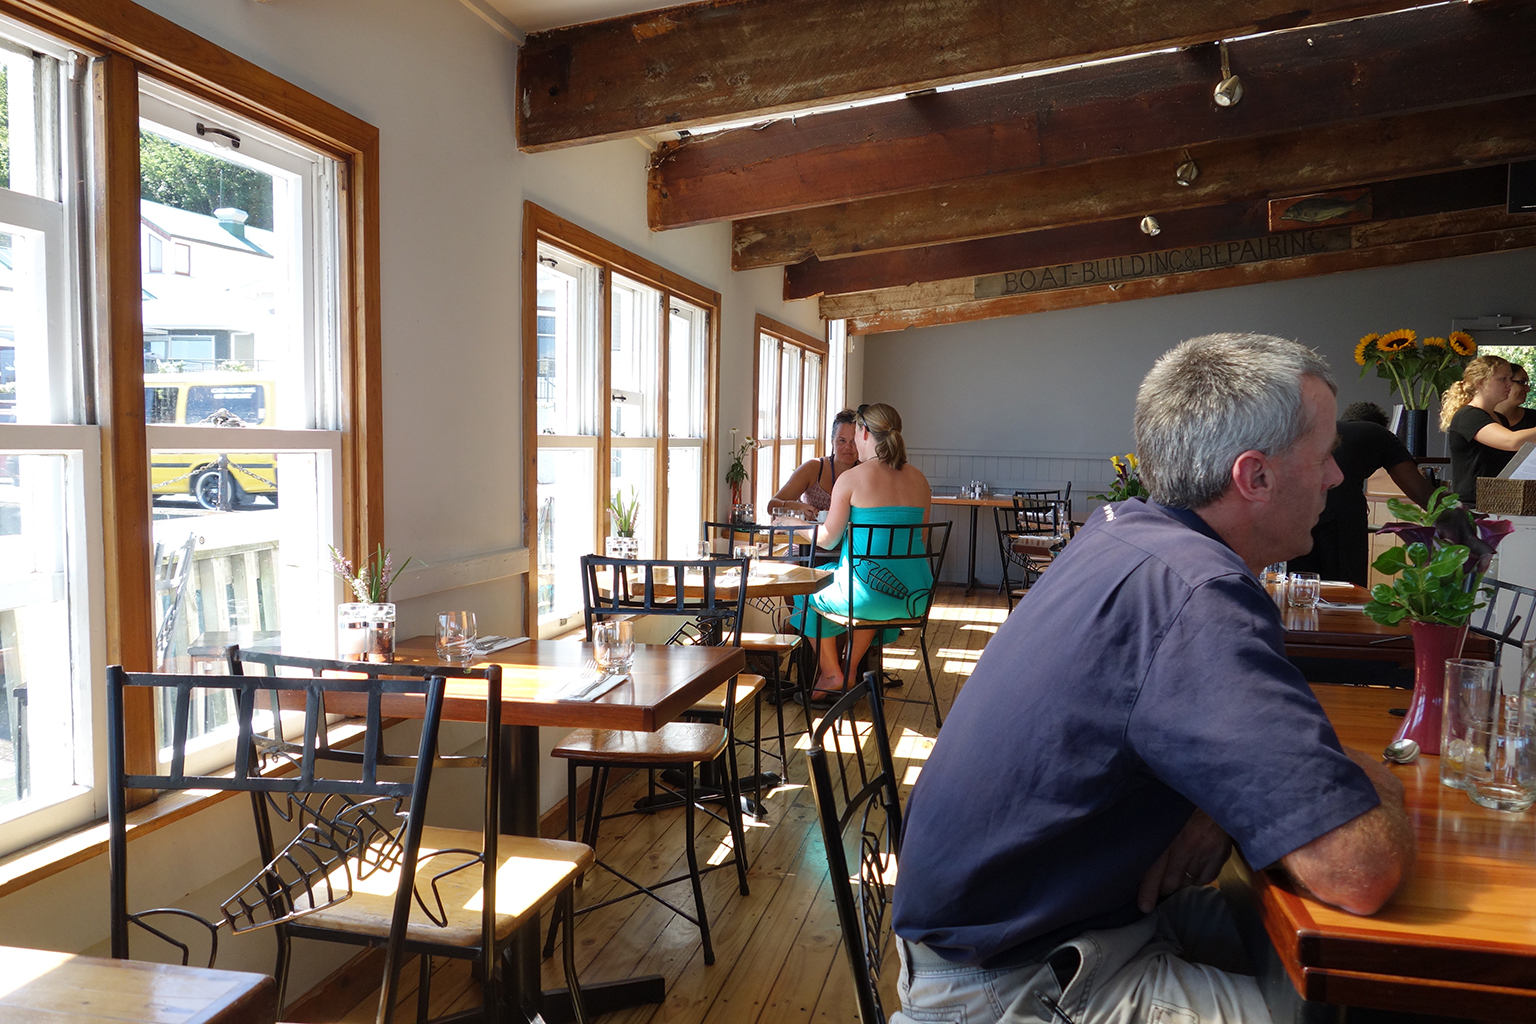 Nelson NZ's Boat Shed Restaurant